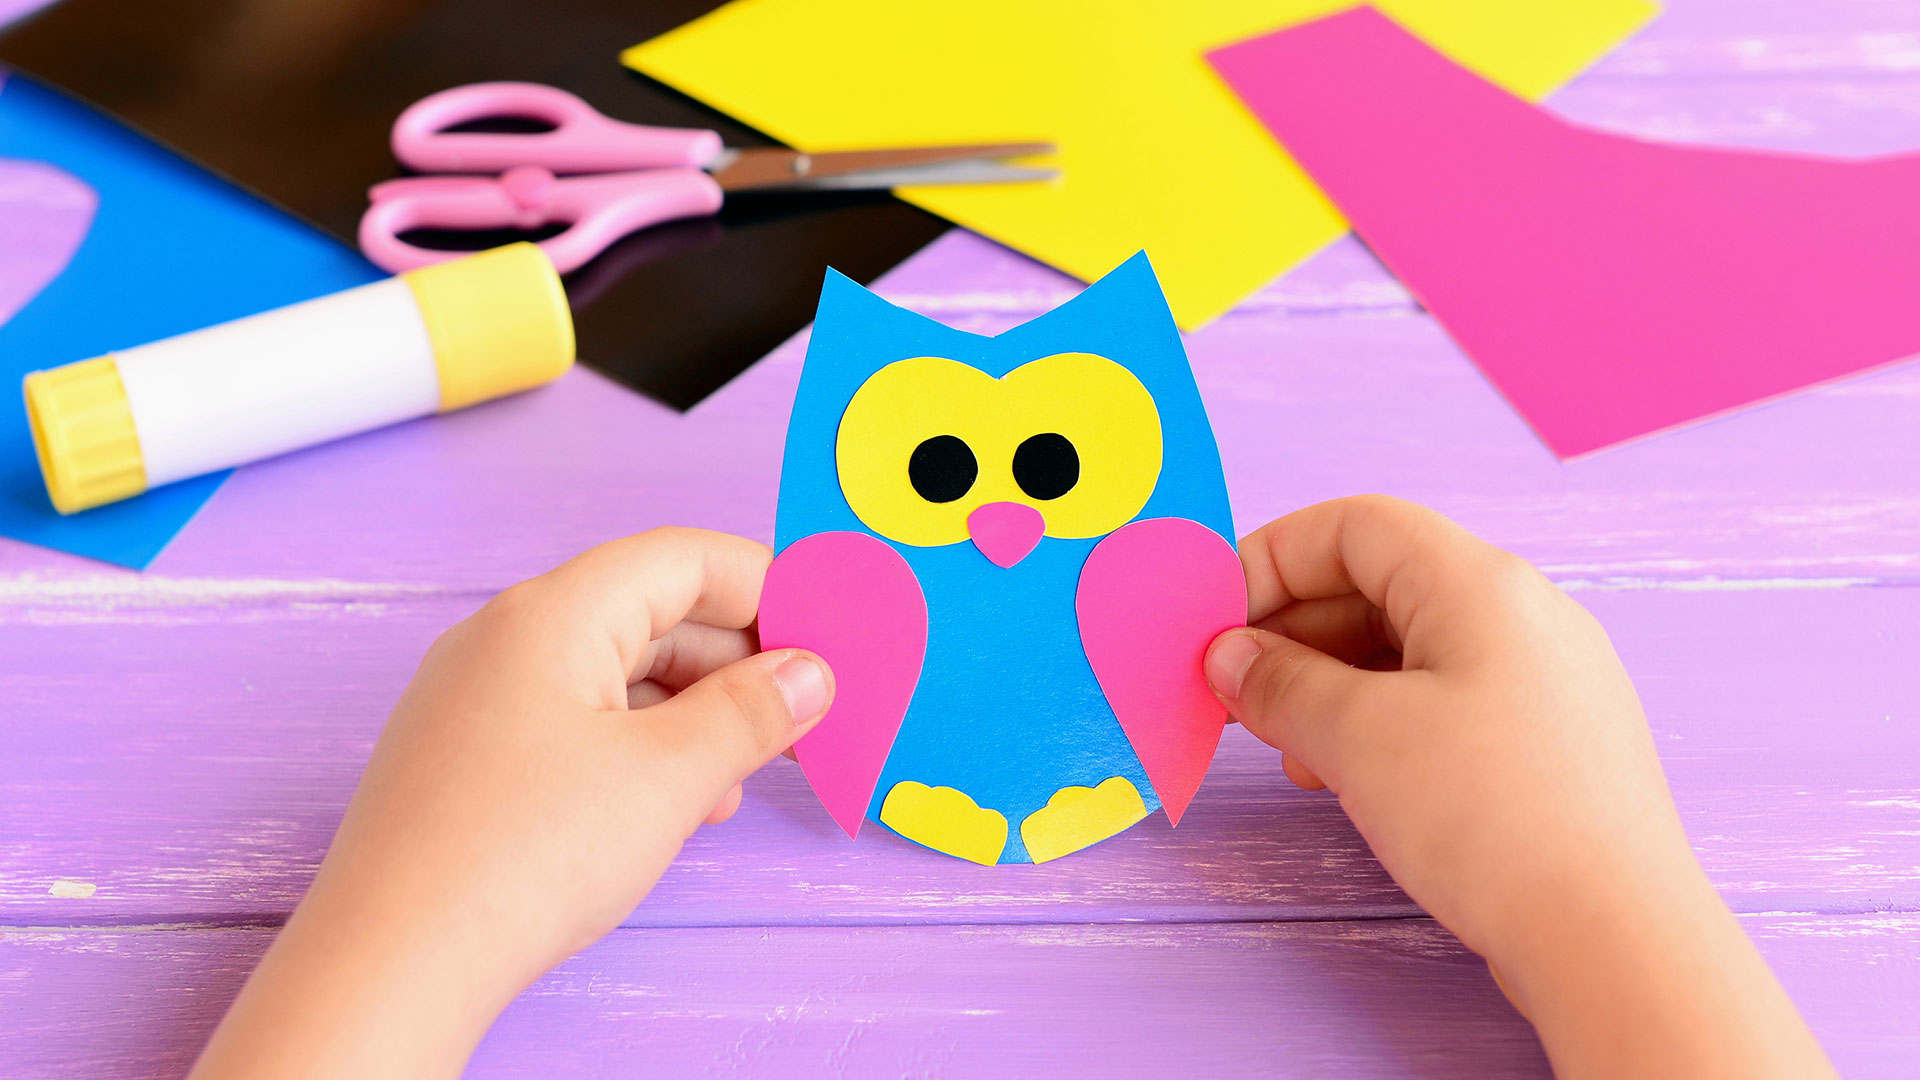 10 Easy Adorable Animal Crafts Kids Can Make Page 9 Sheknows